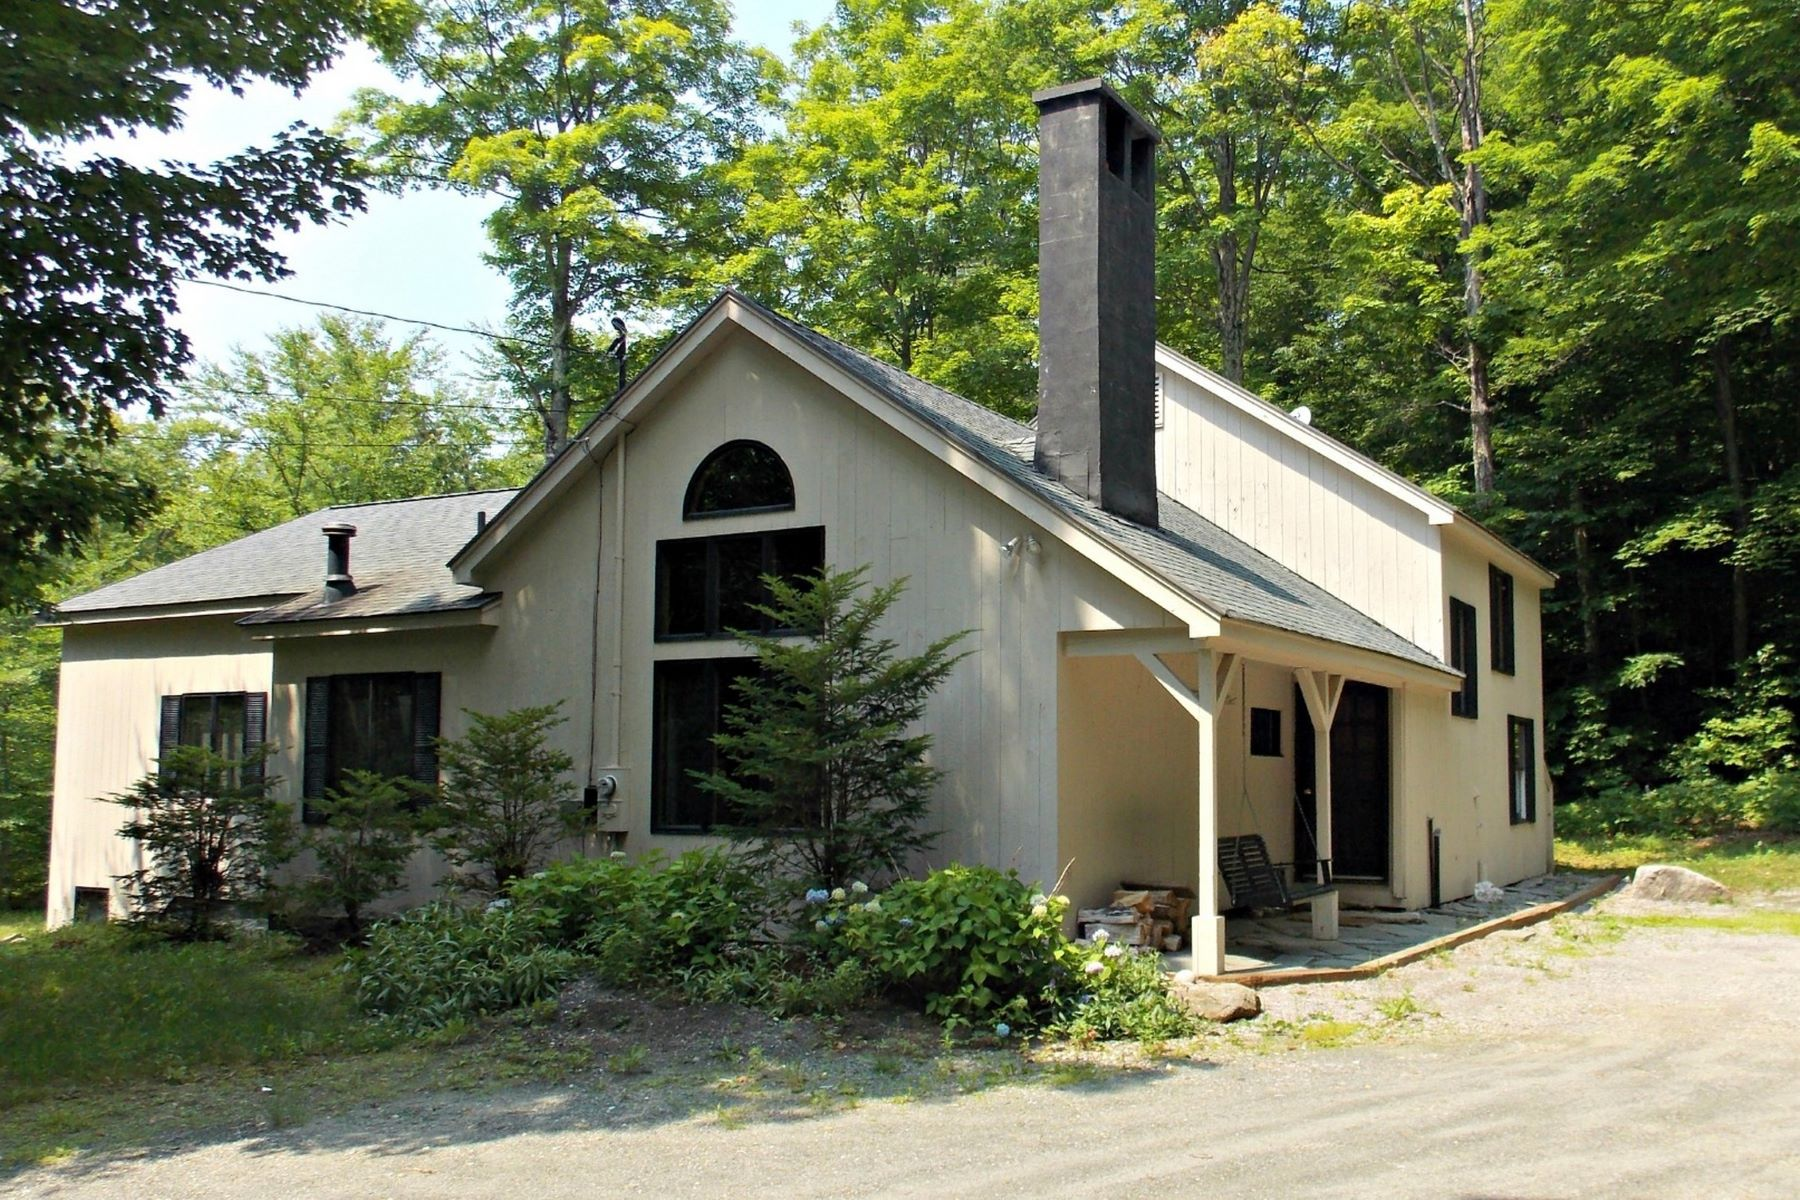 Single Family Home for Sale at 61 Sugarbush Dr, Winhall Winhall, Vermont, 05340 United States